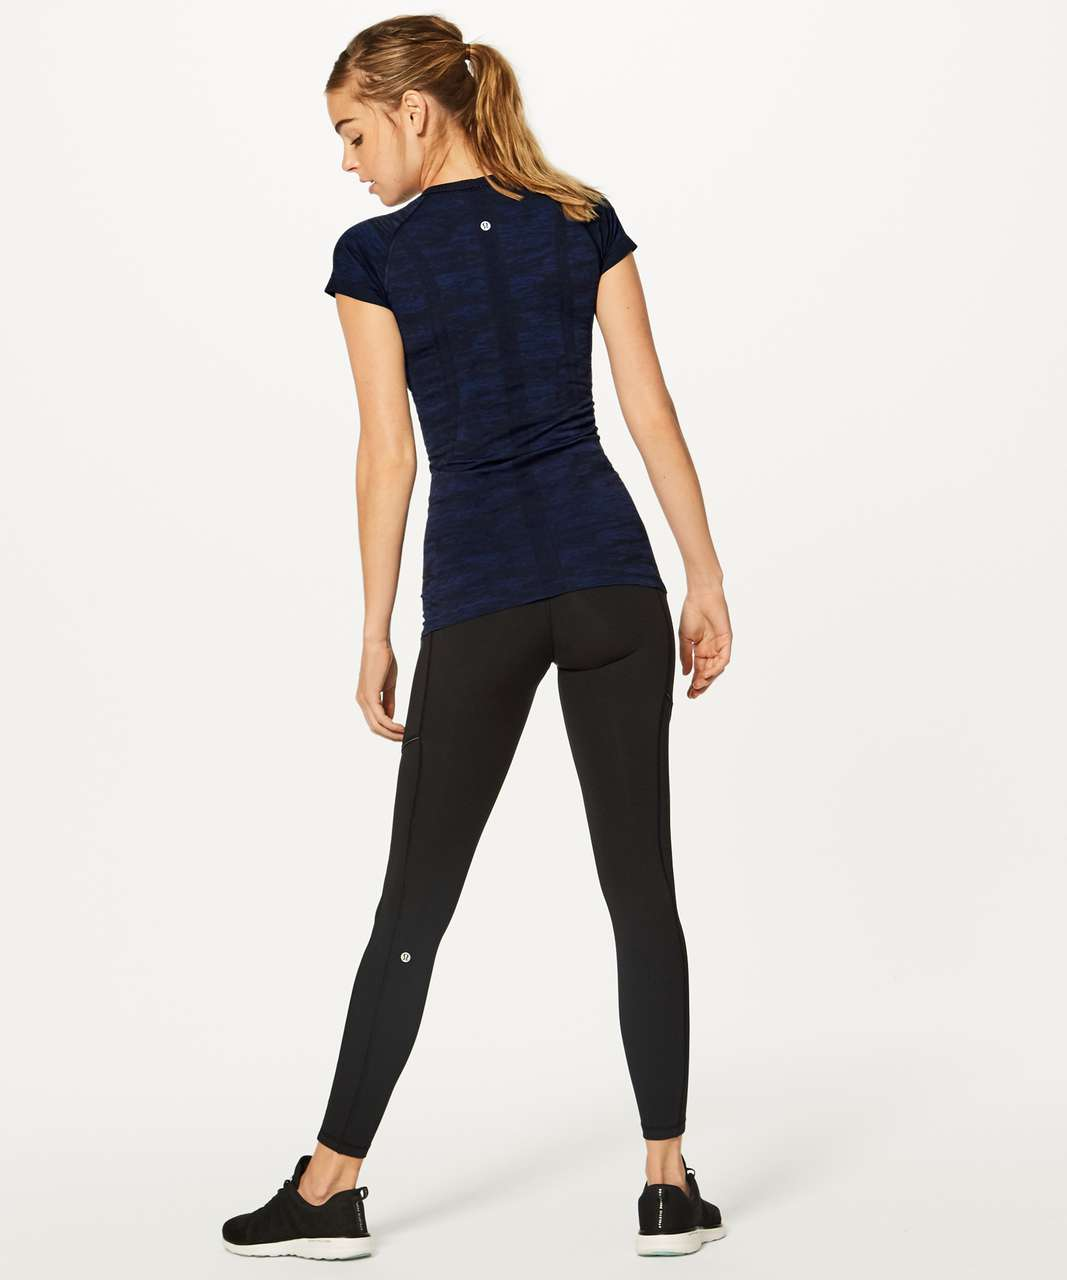 Lululemon Swiftly Tech Short Sleeve Crew - Midnight Navy / Psychic / Black